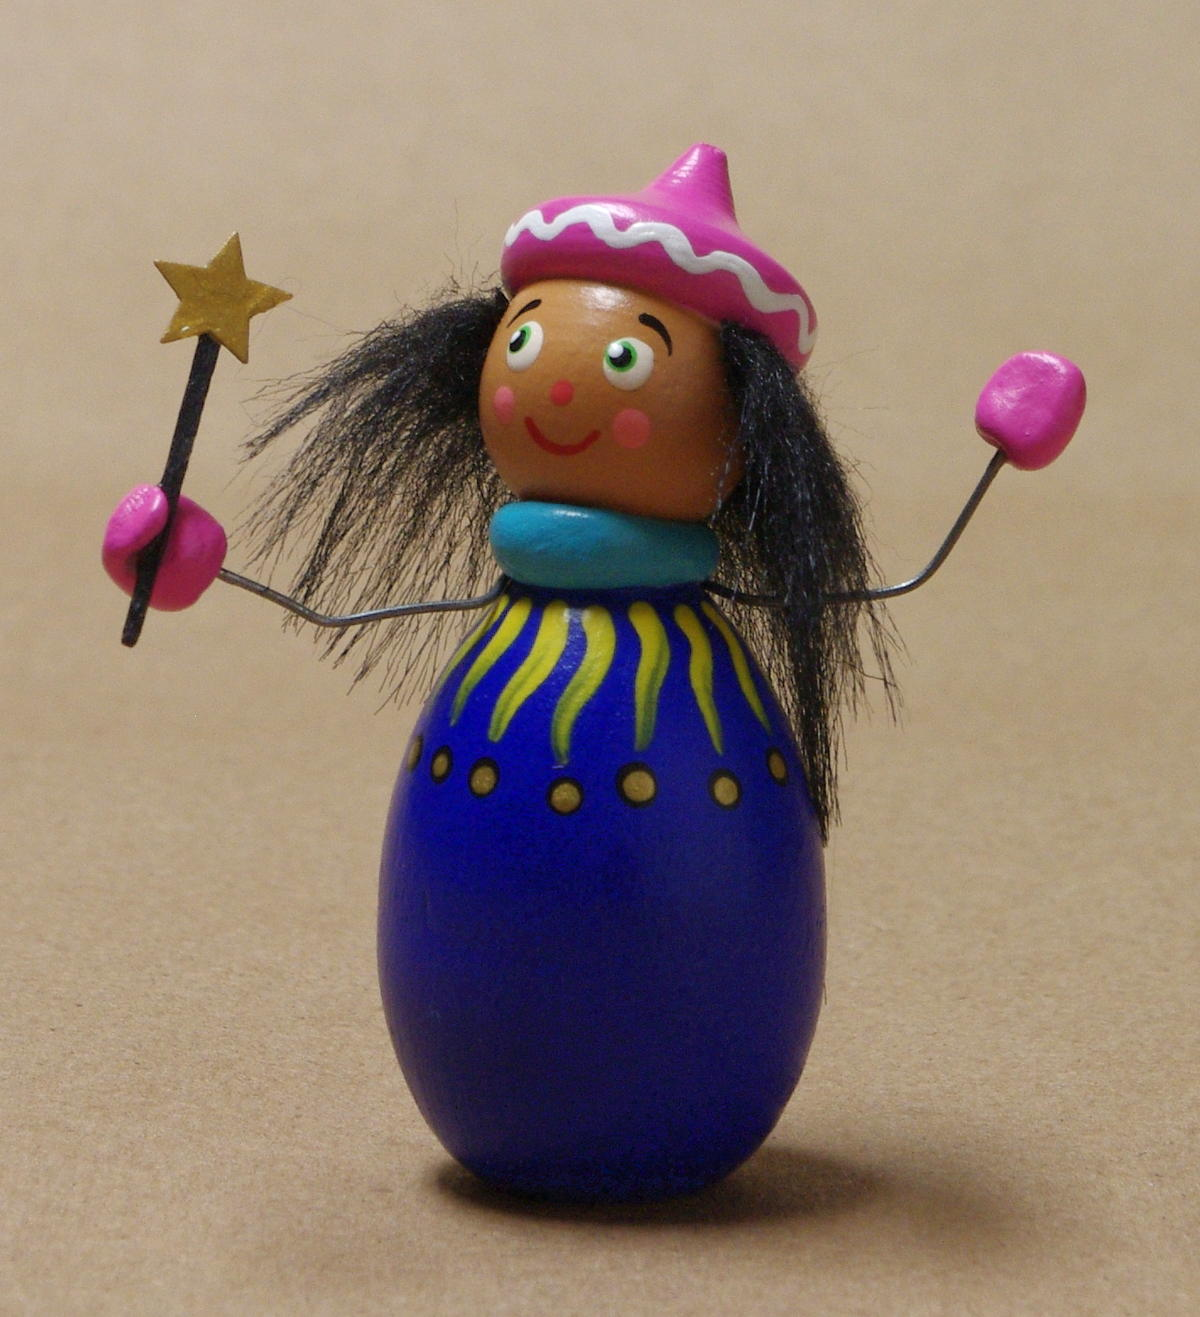 Christiane's Blue Wizard Ornament